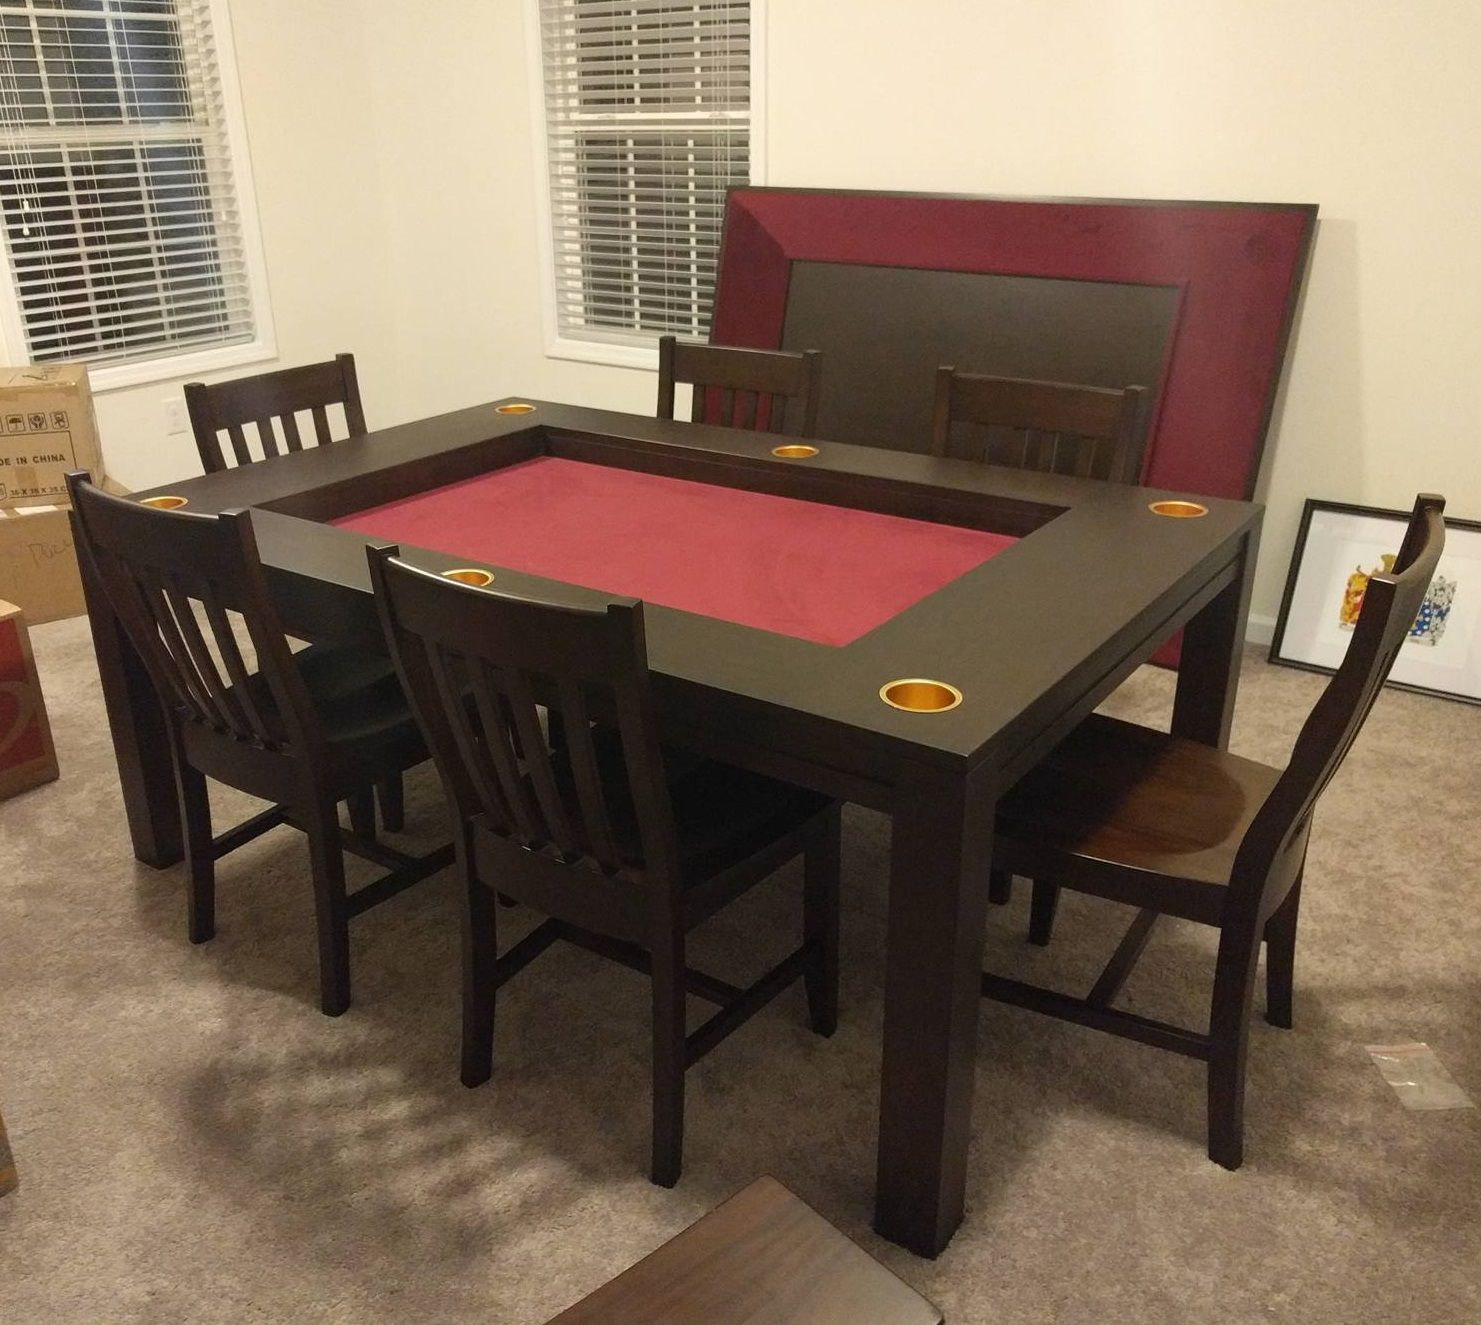 Dining Game Table: One Table for Everyday Dining and Game Night